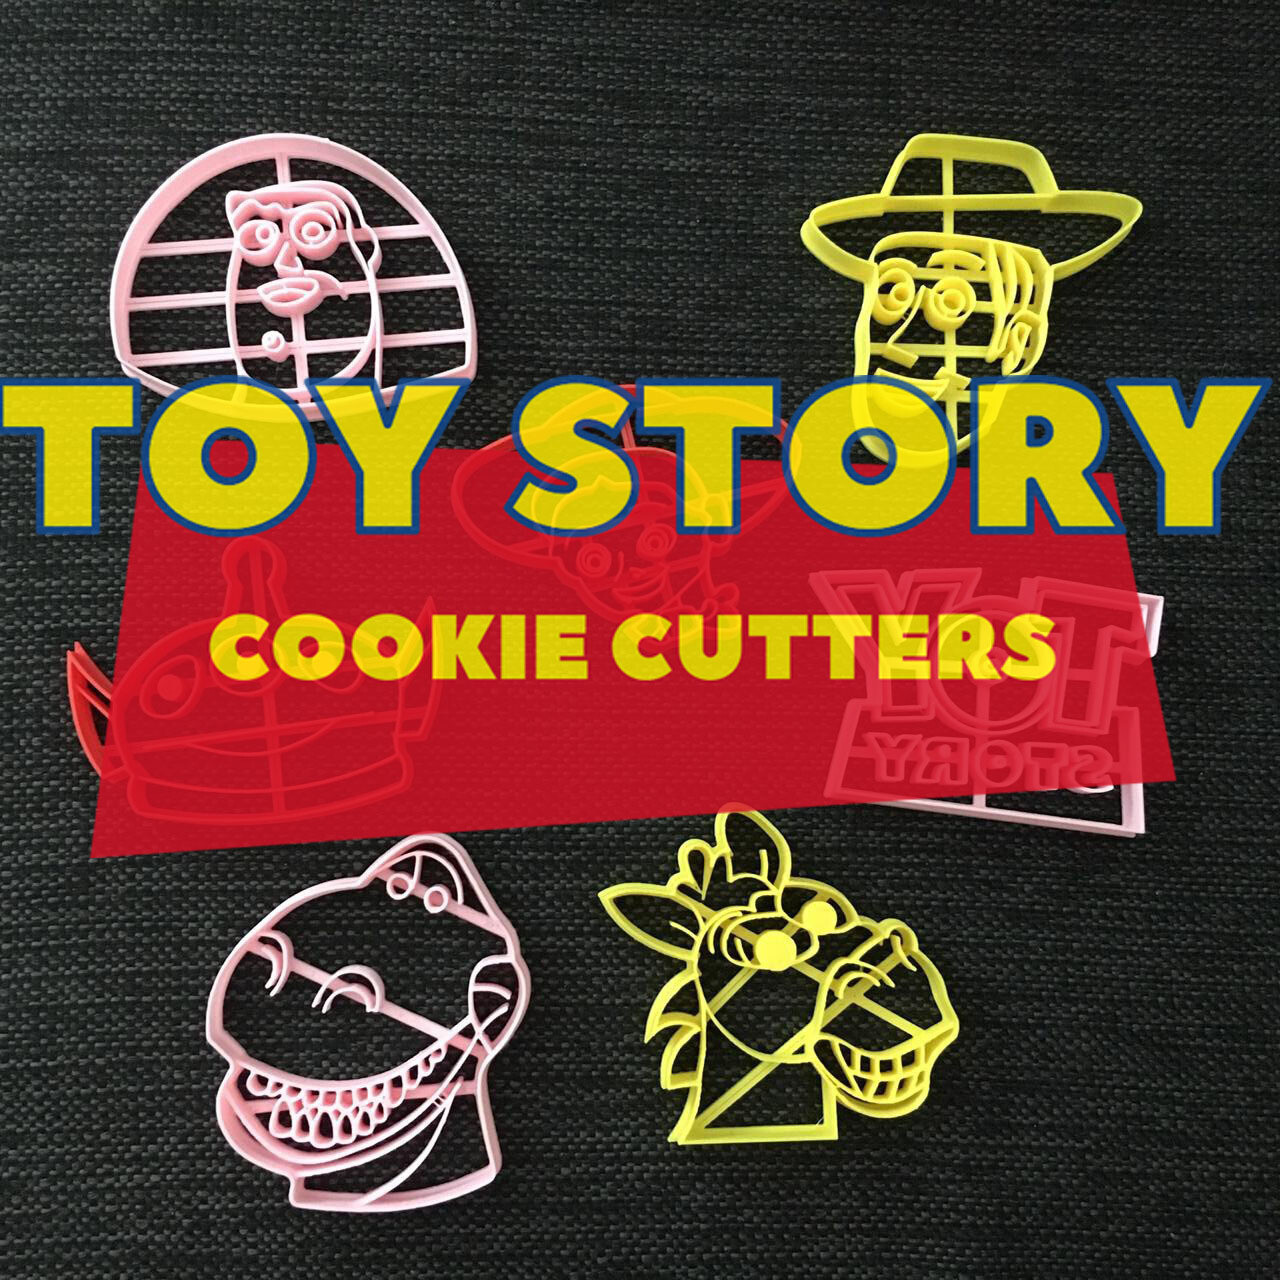 Toy Story Cookie Cutters